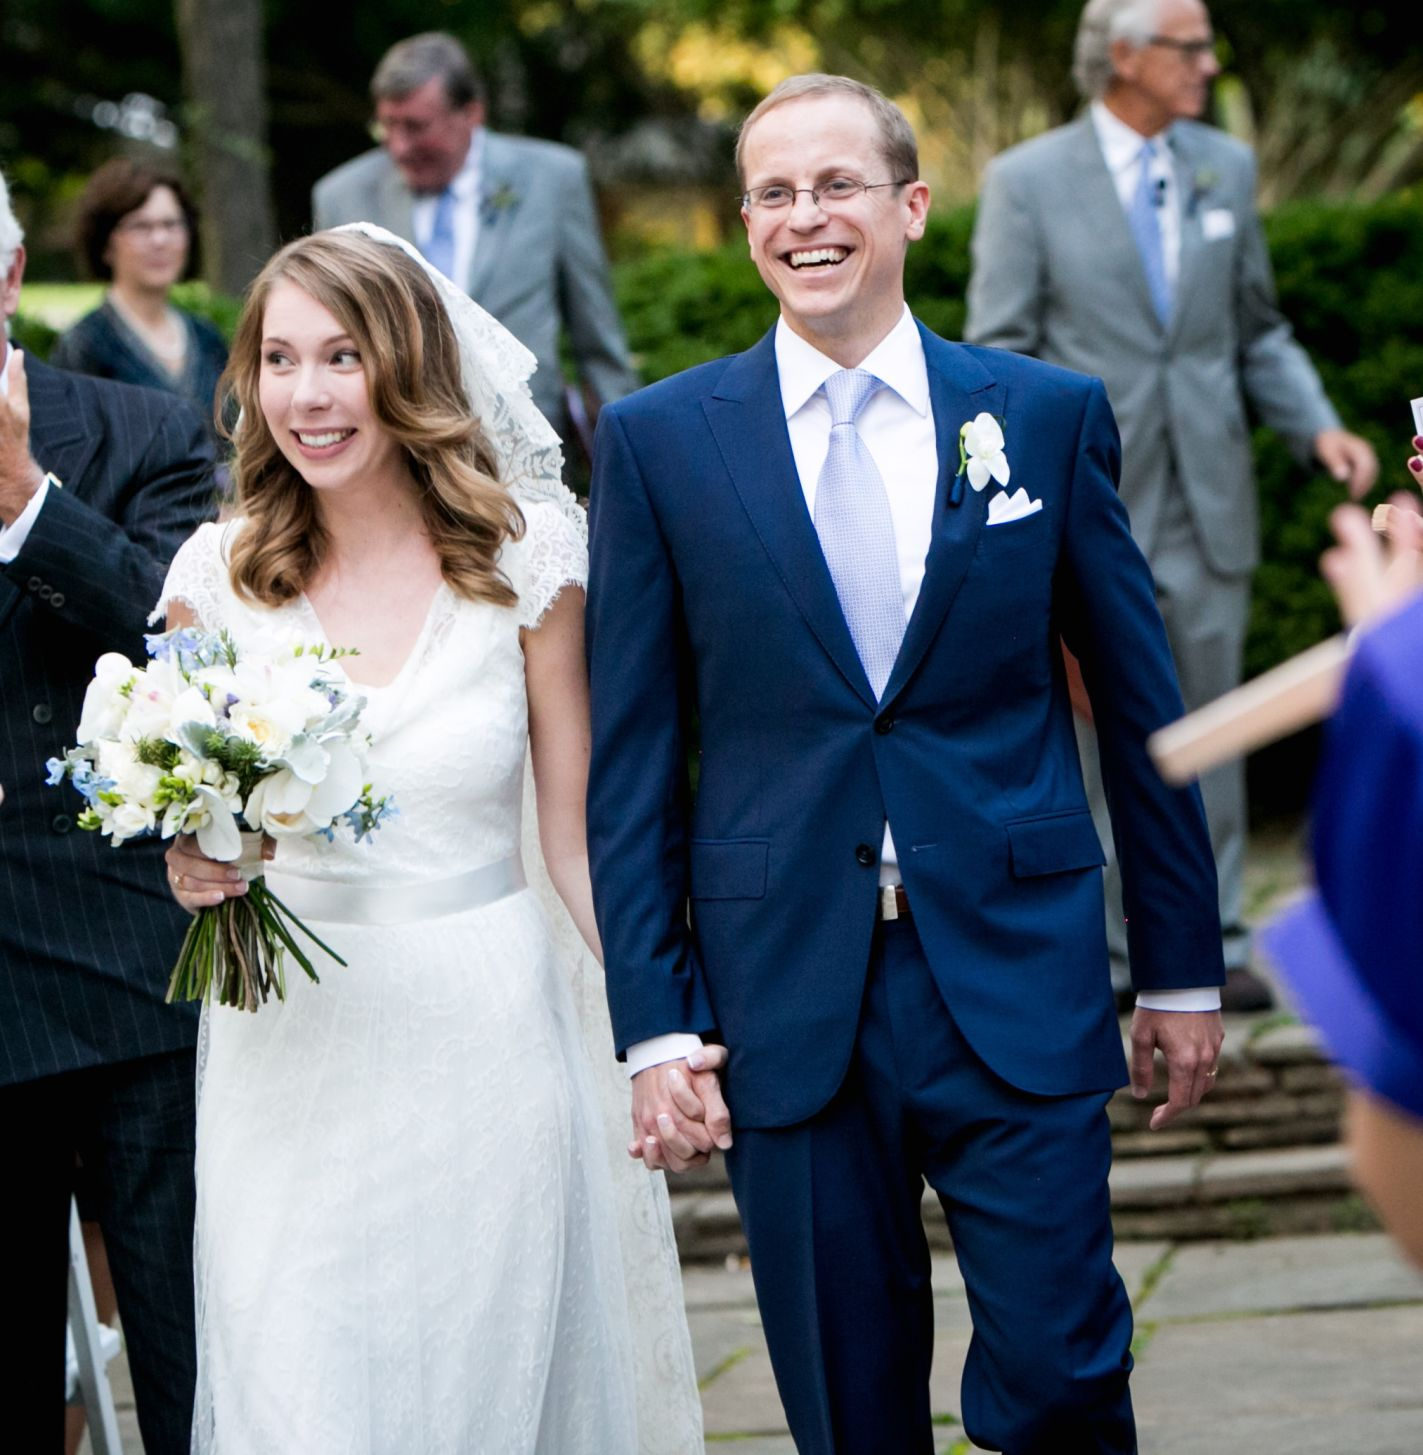 Chevy chase daughter sydney wedding venues